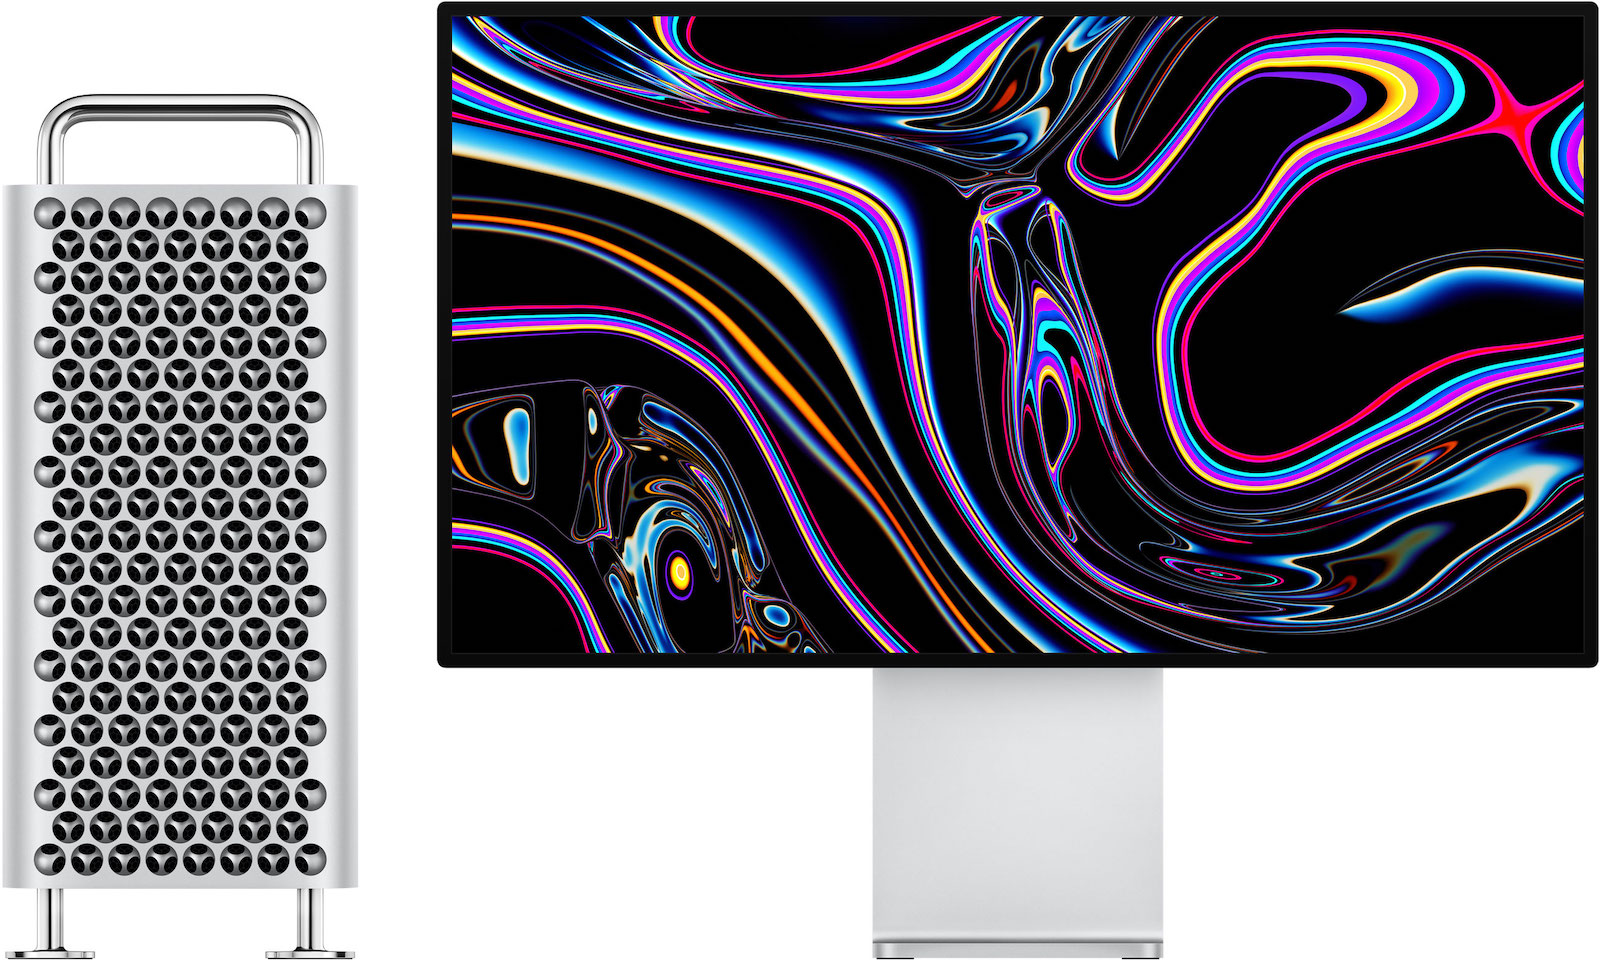 Macpro and pro display xdr